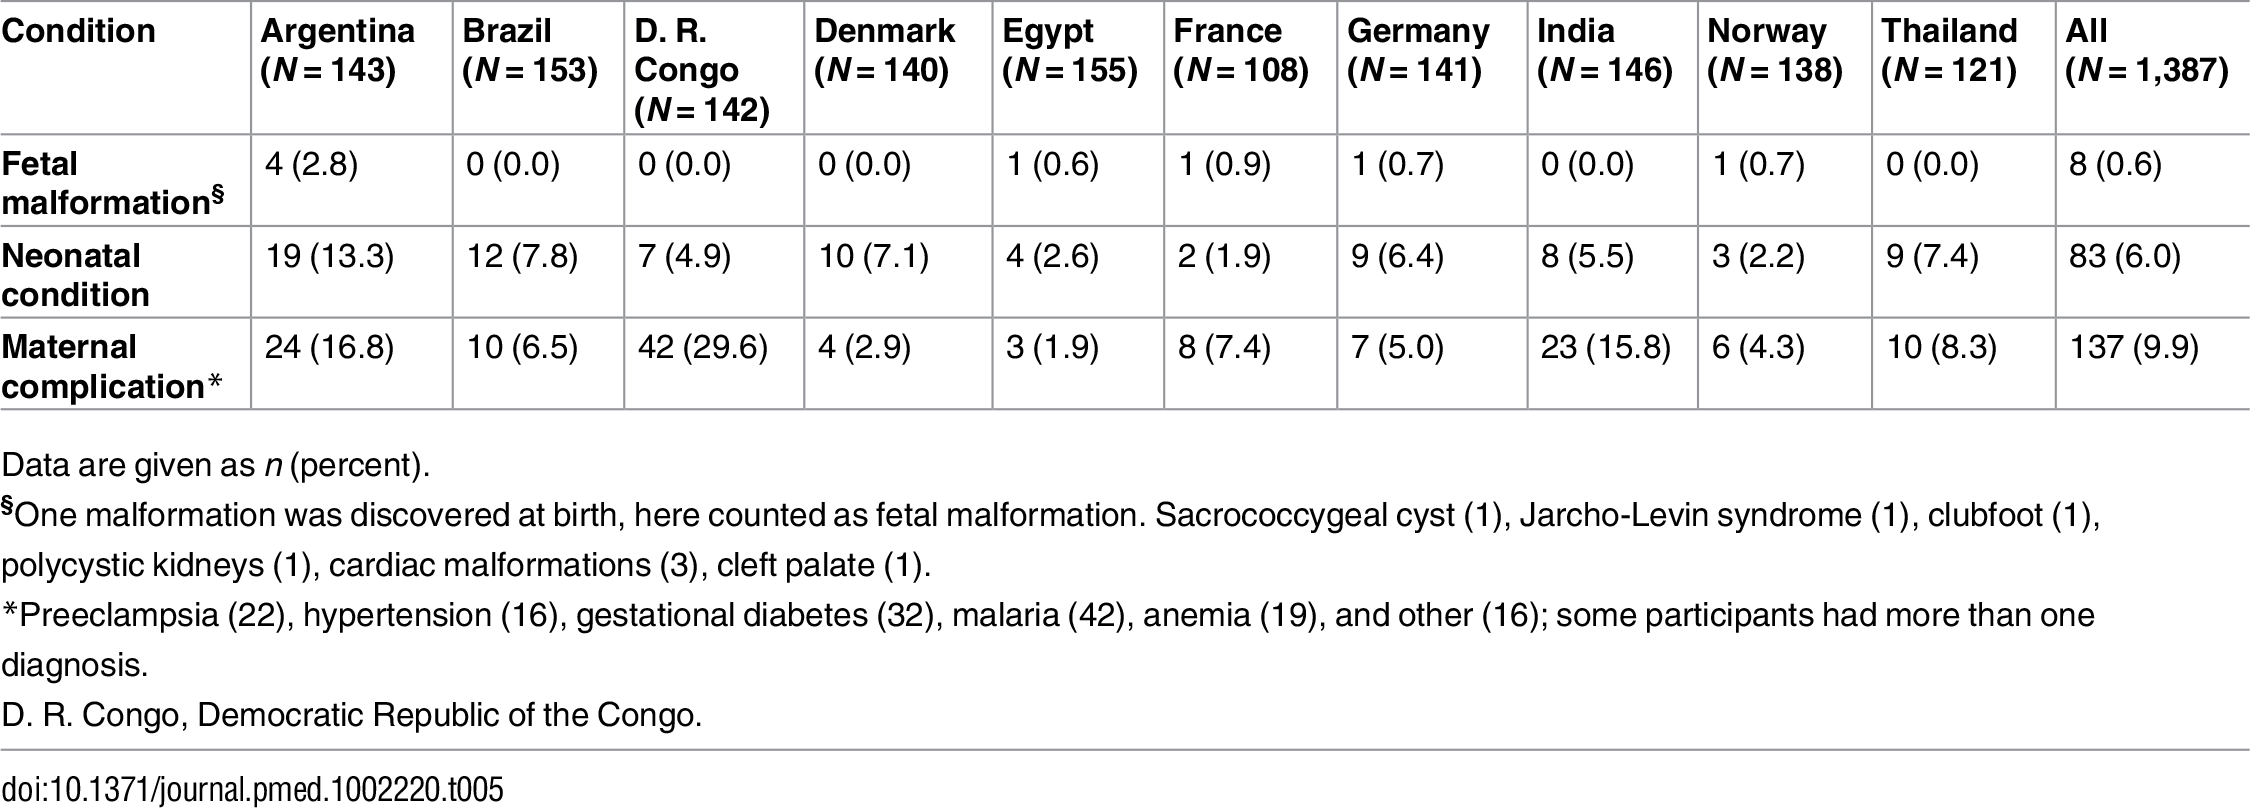 Maternal complications, fetal malformations, and neonatal conditions by country.